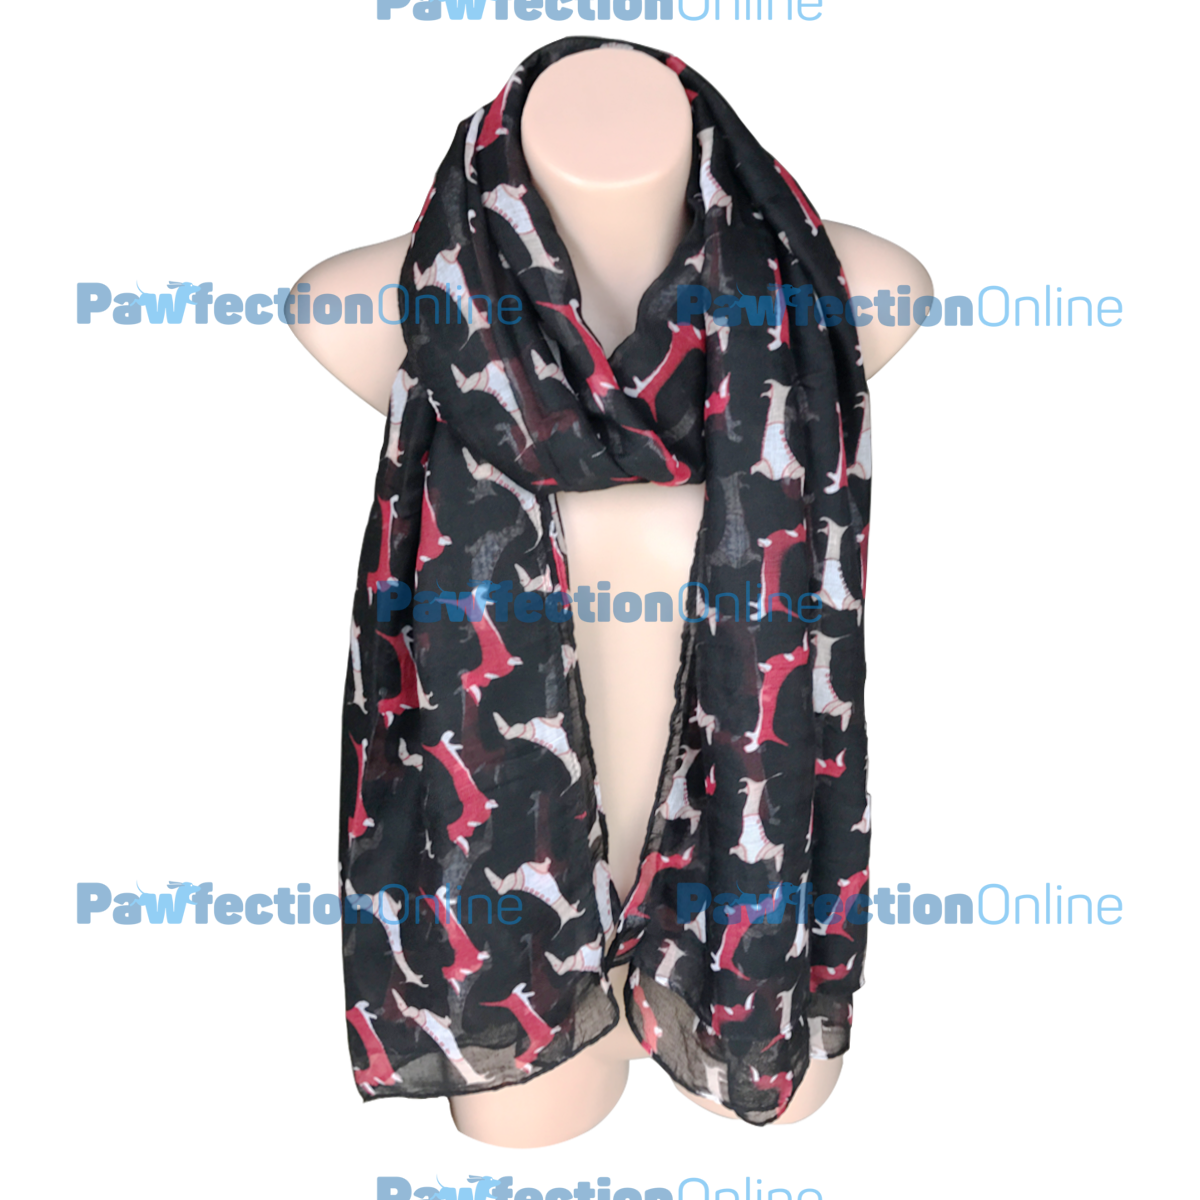 The dachshund sausage dog print scarves are made from a light sheer voile material. The beautiful soft scarves are a great gift idea for any dachshund lover.